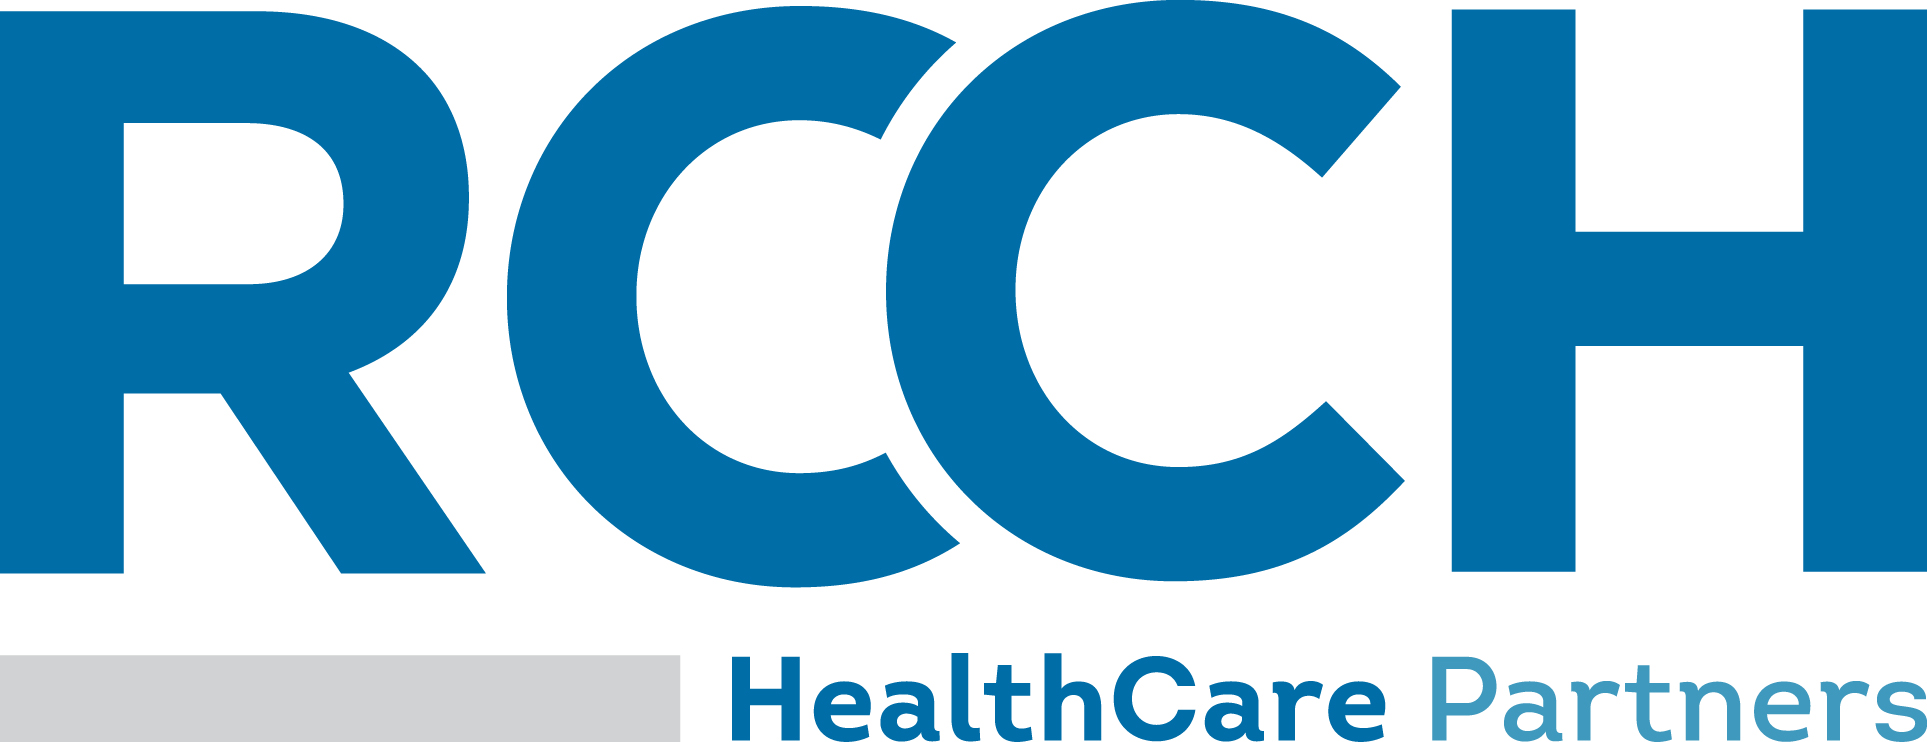 RCCH Healthcare Partners